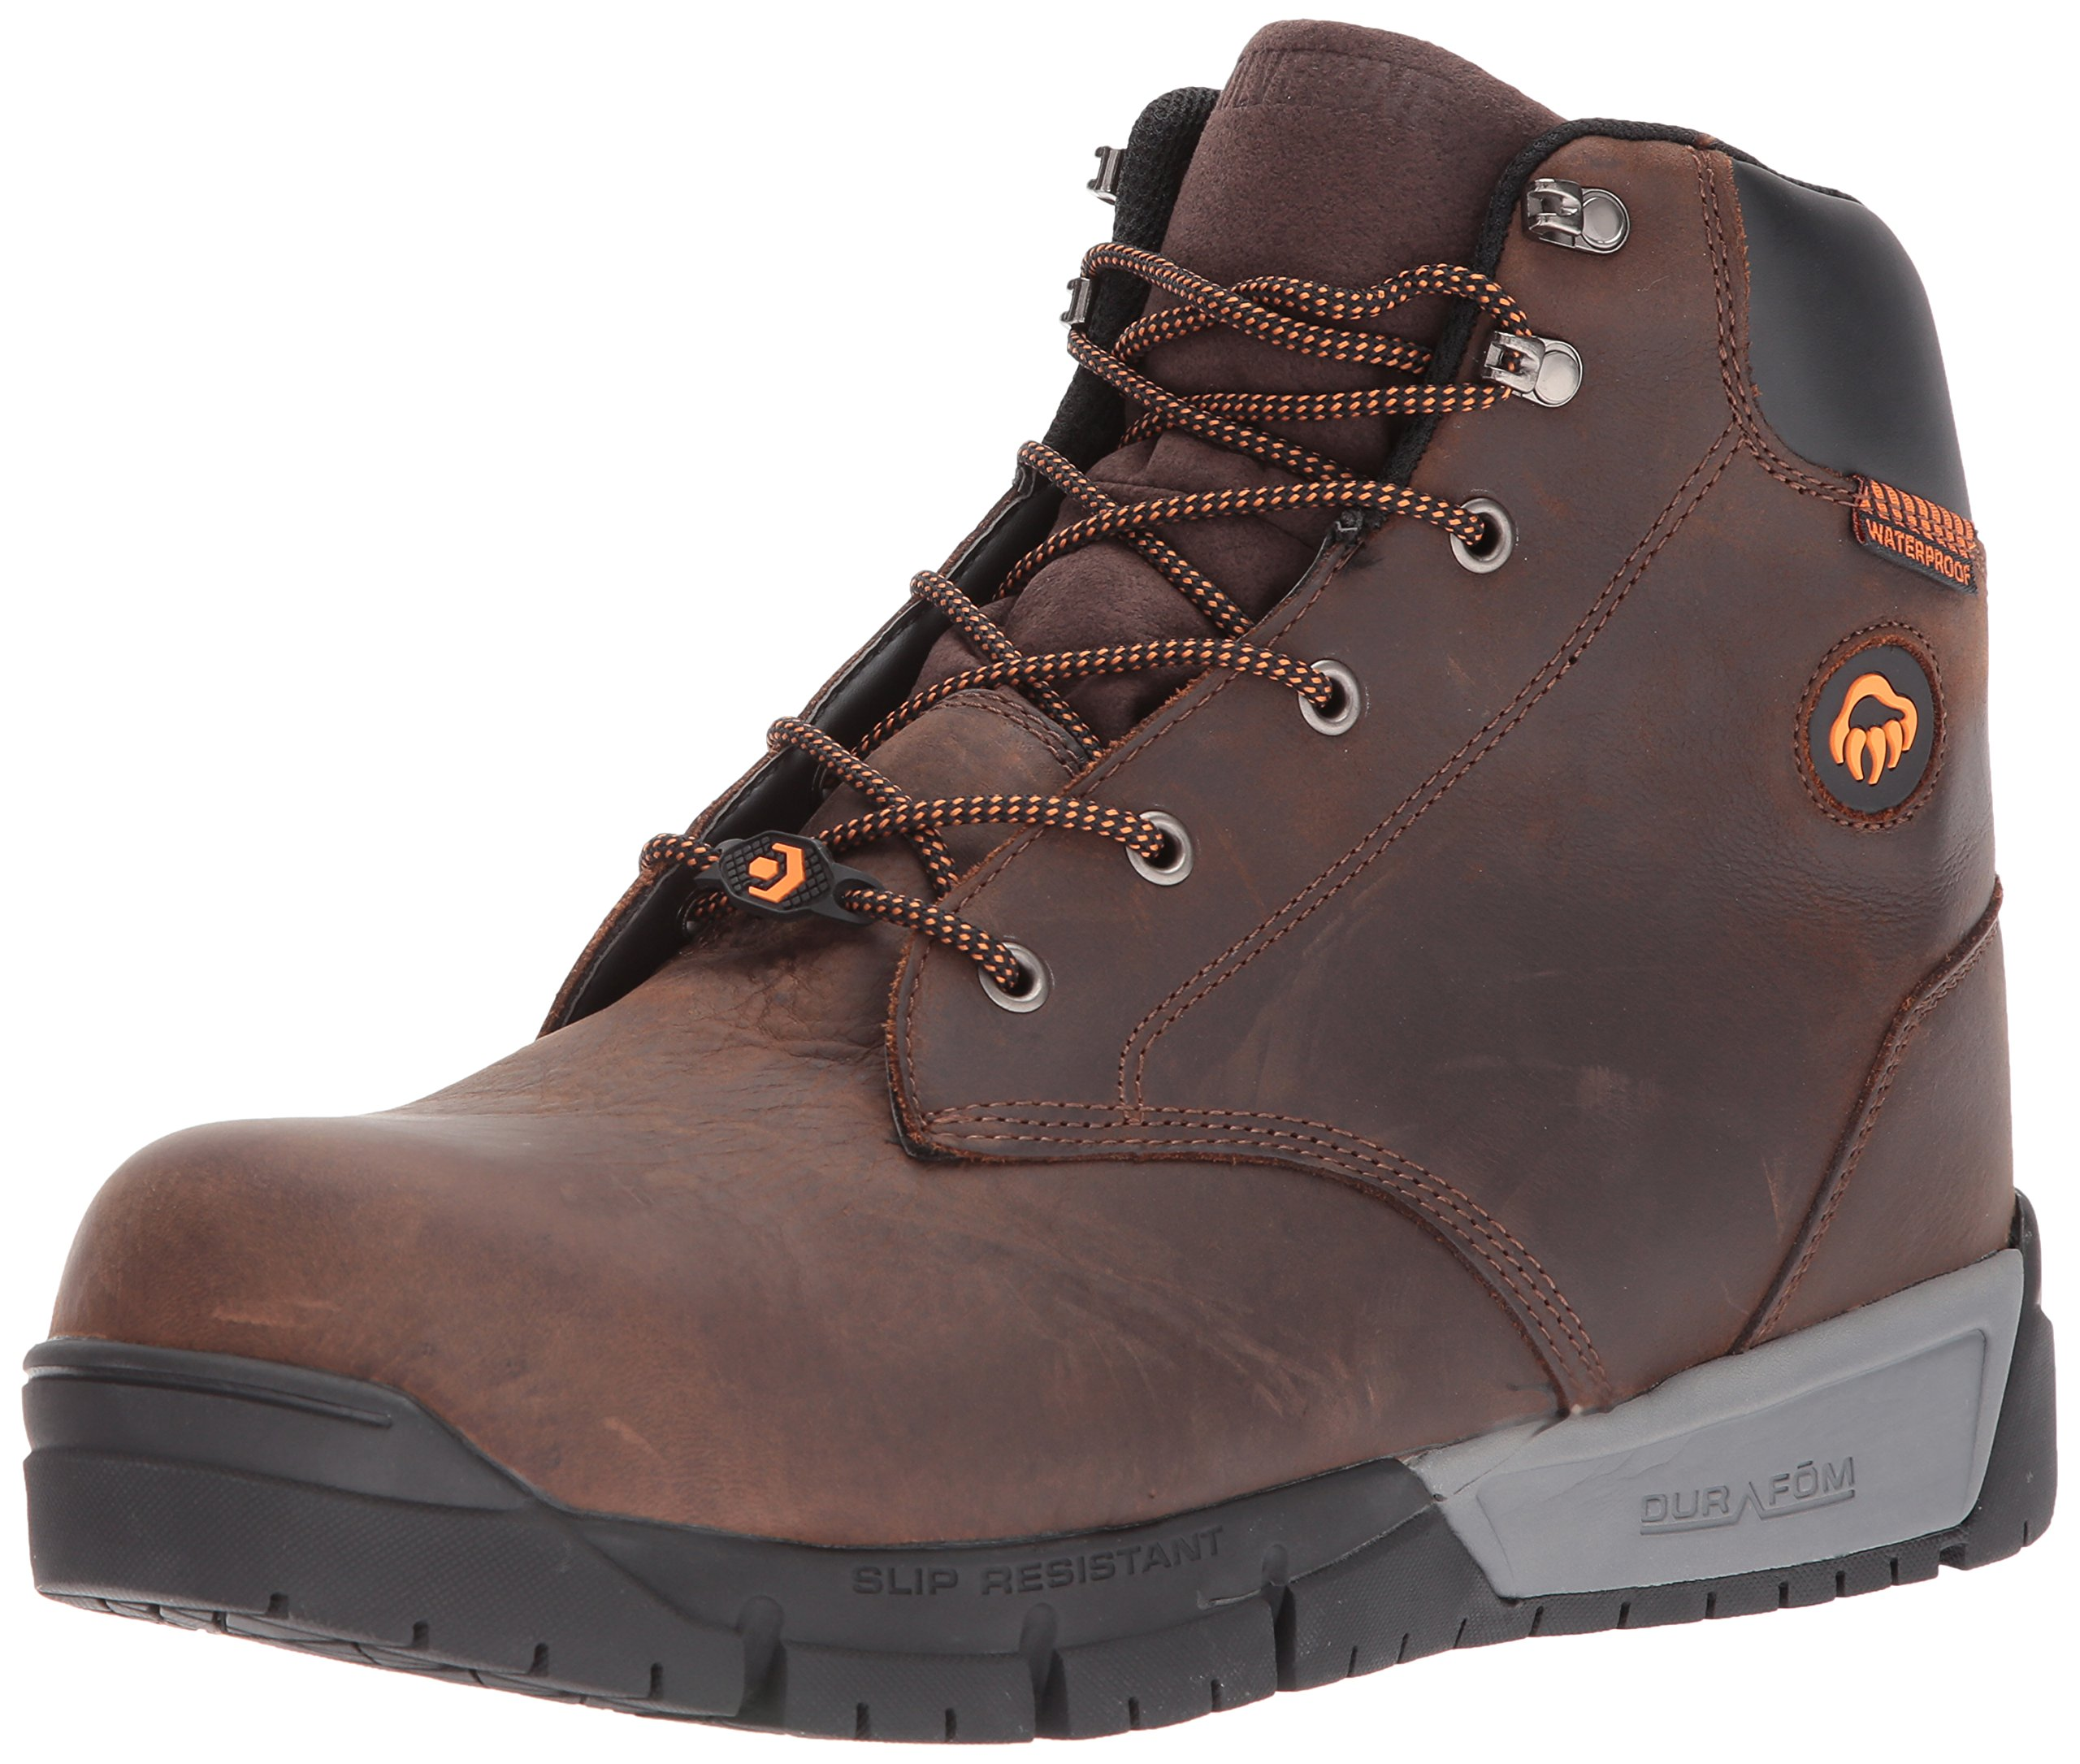 Wolverine Men's Mauler LX Composite Toe Waterproof Work Boot, Brown, 8 3E US